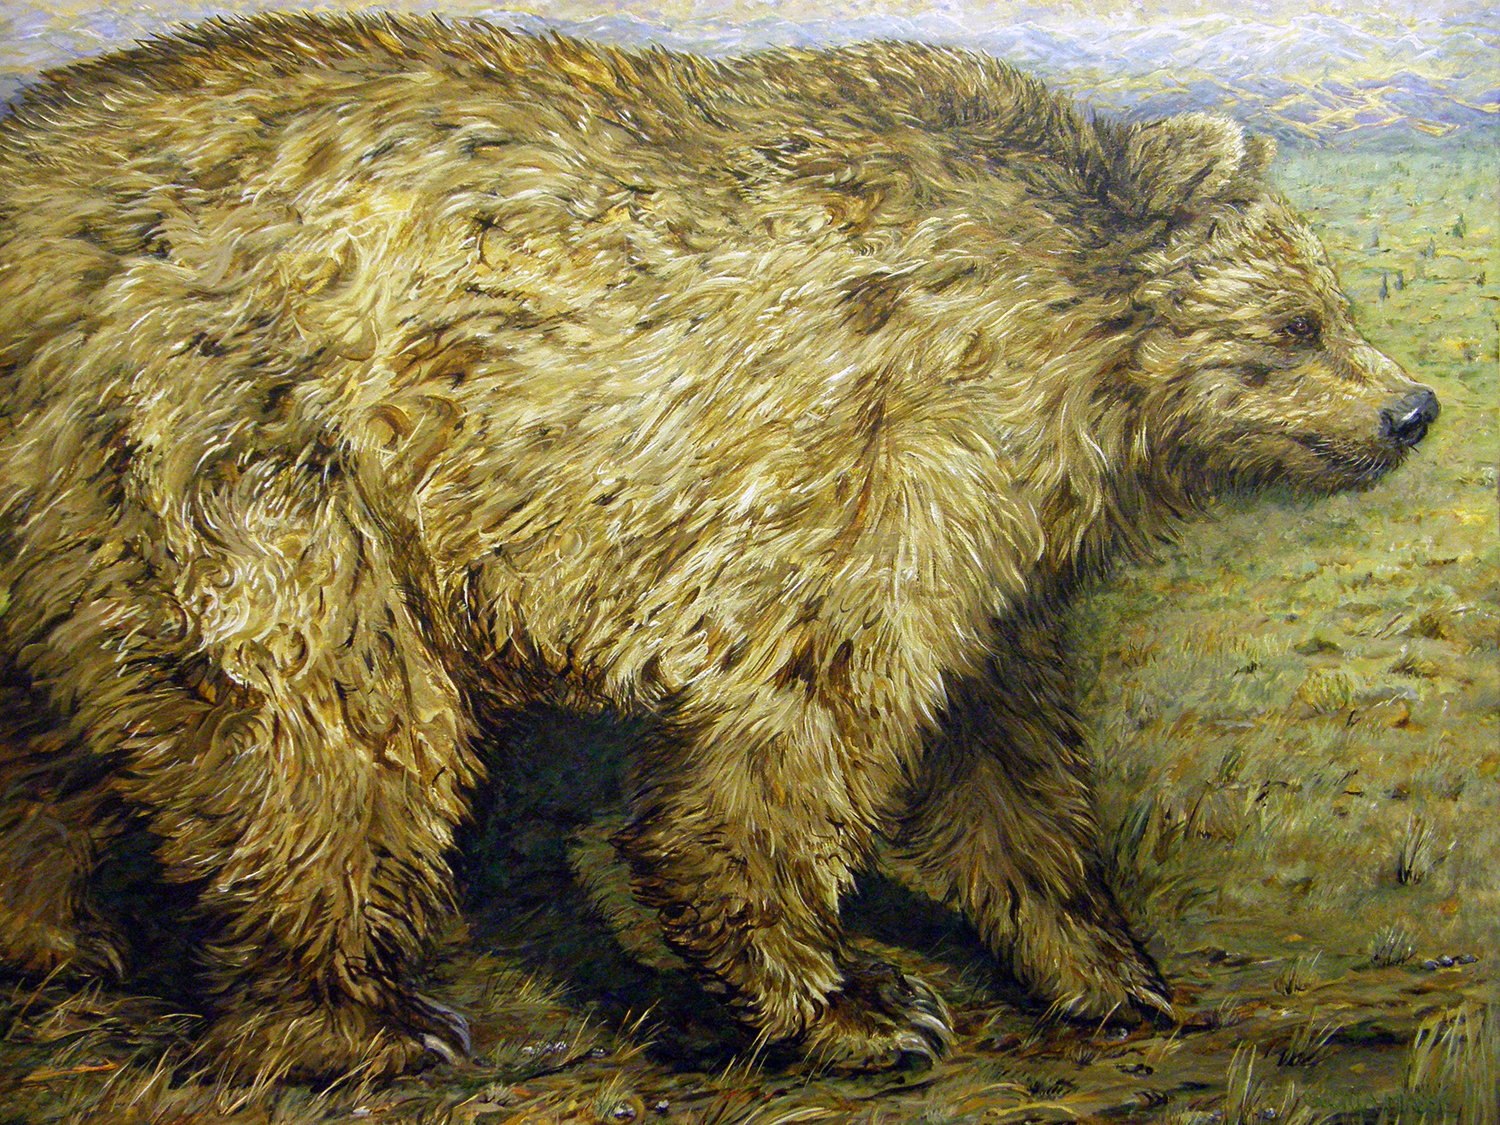 a grizzly can roam over a thousand miles 2008 acrylic 52x44